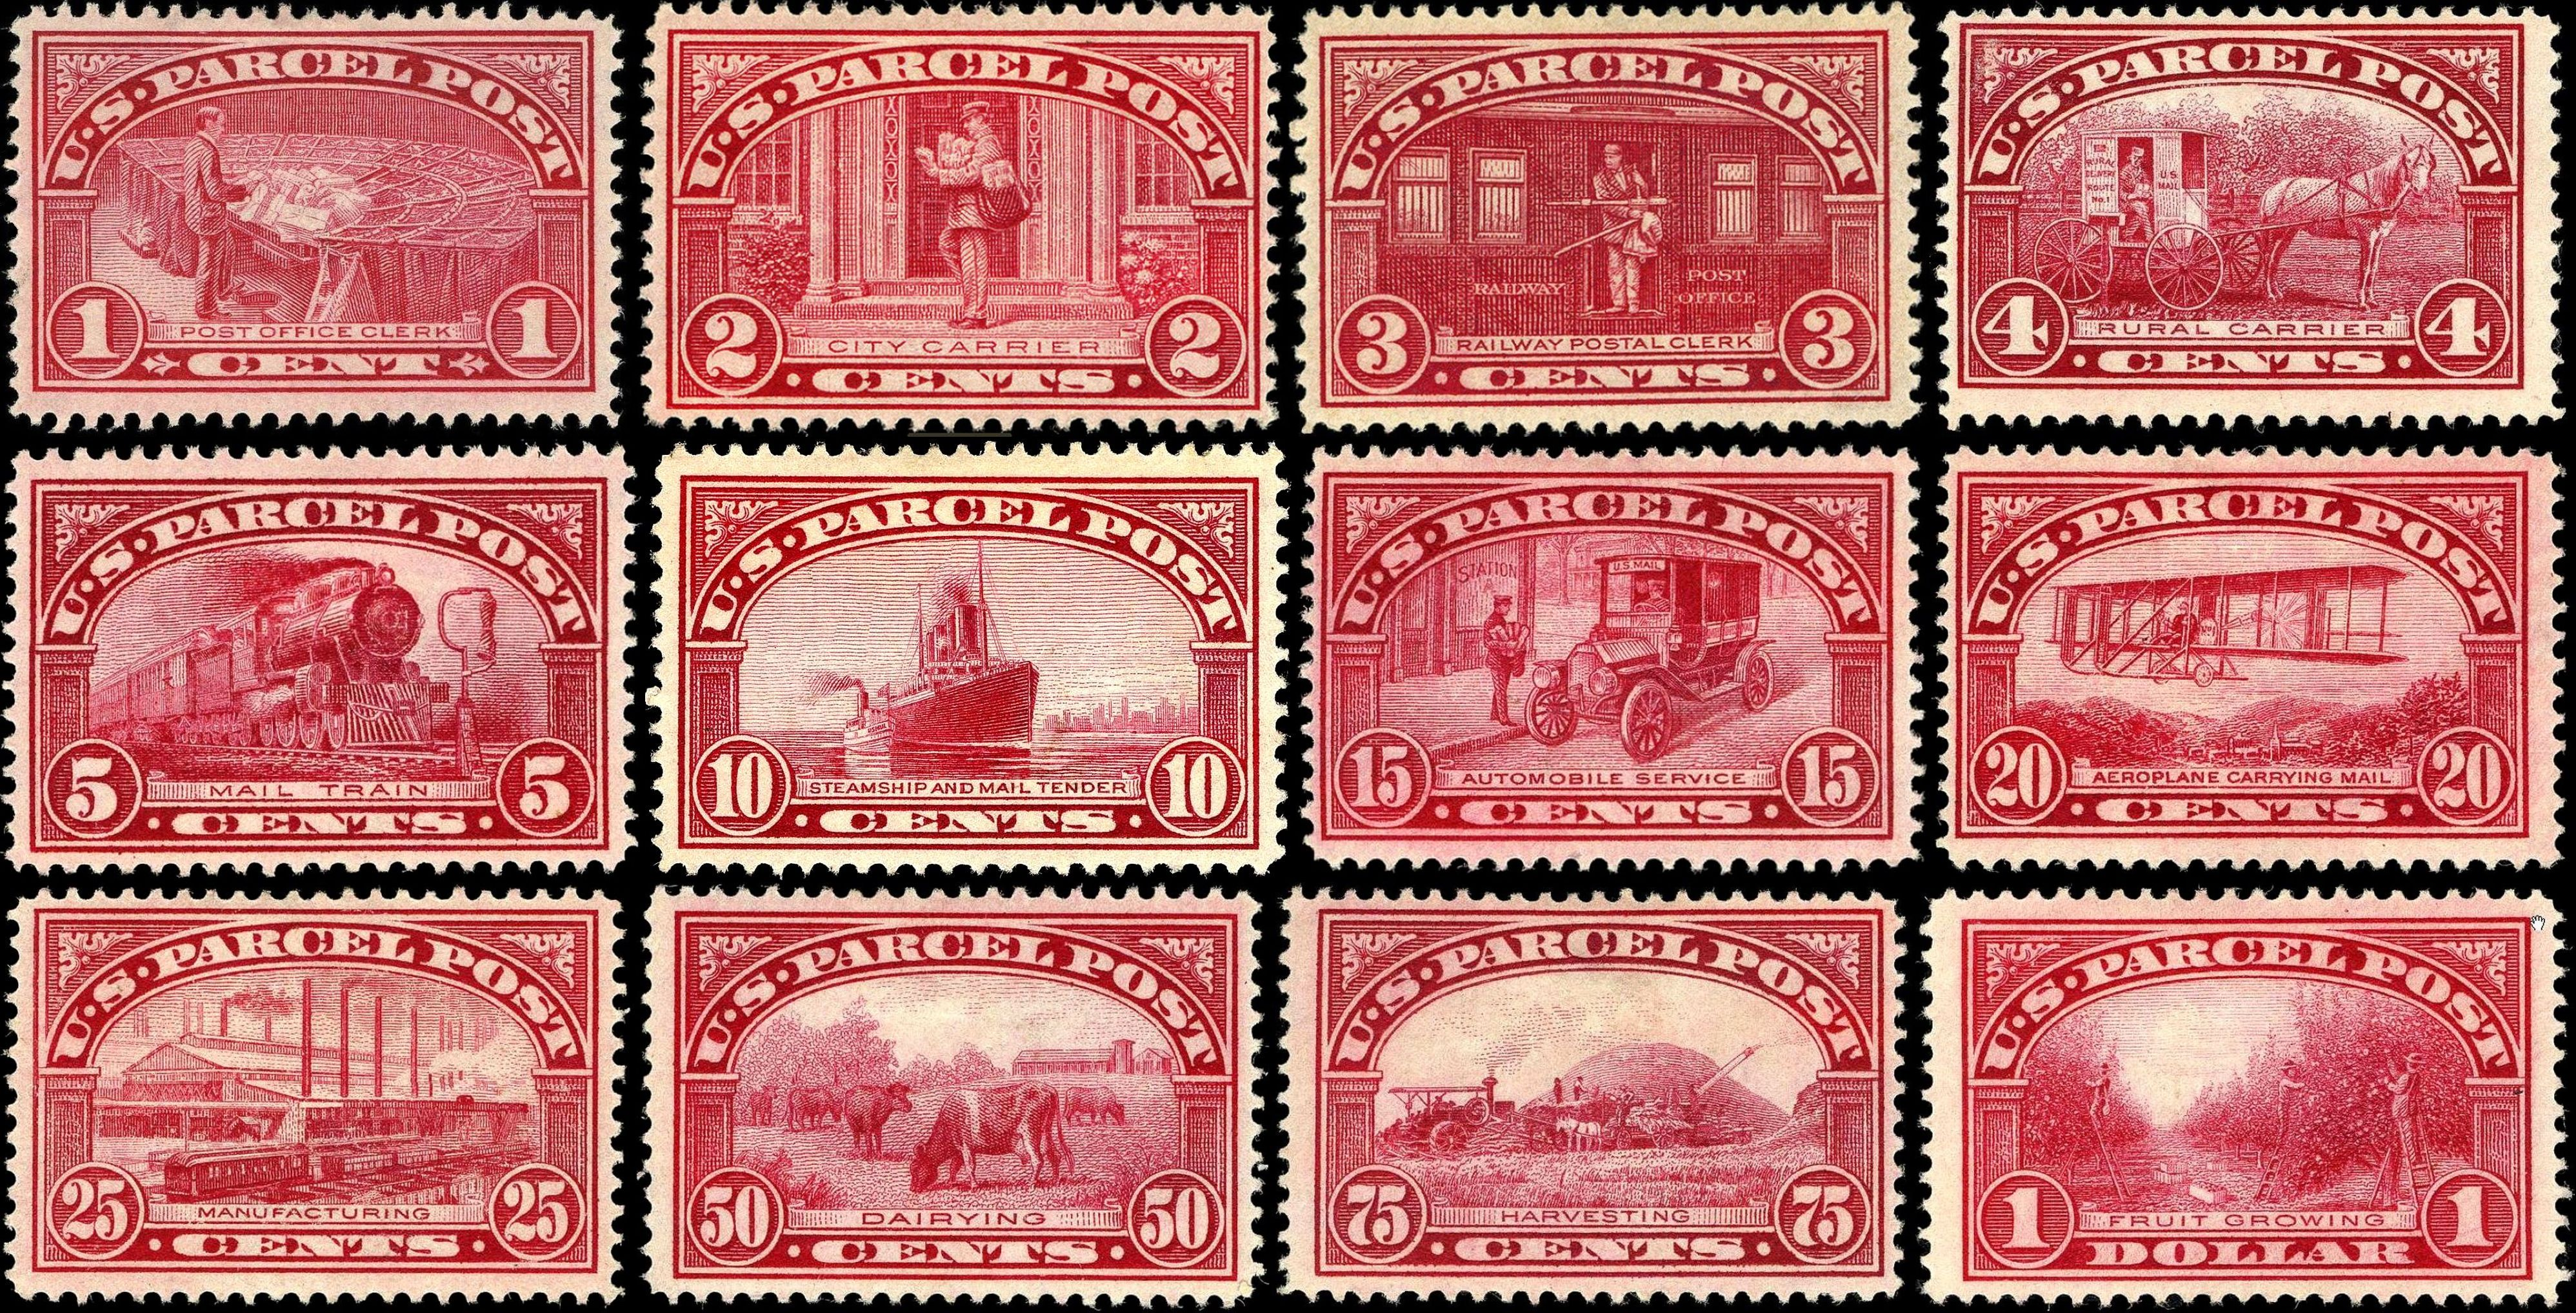 US Parcel Post Stamps Of 1912 13